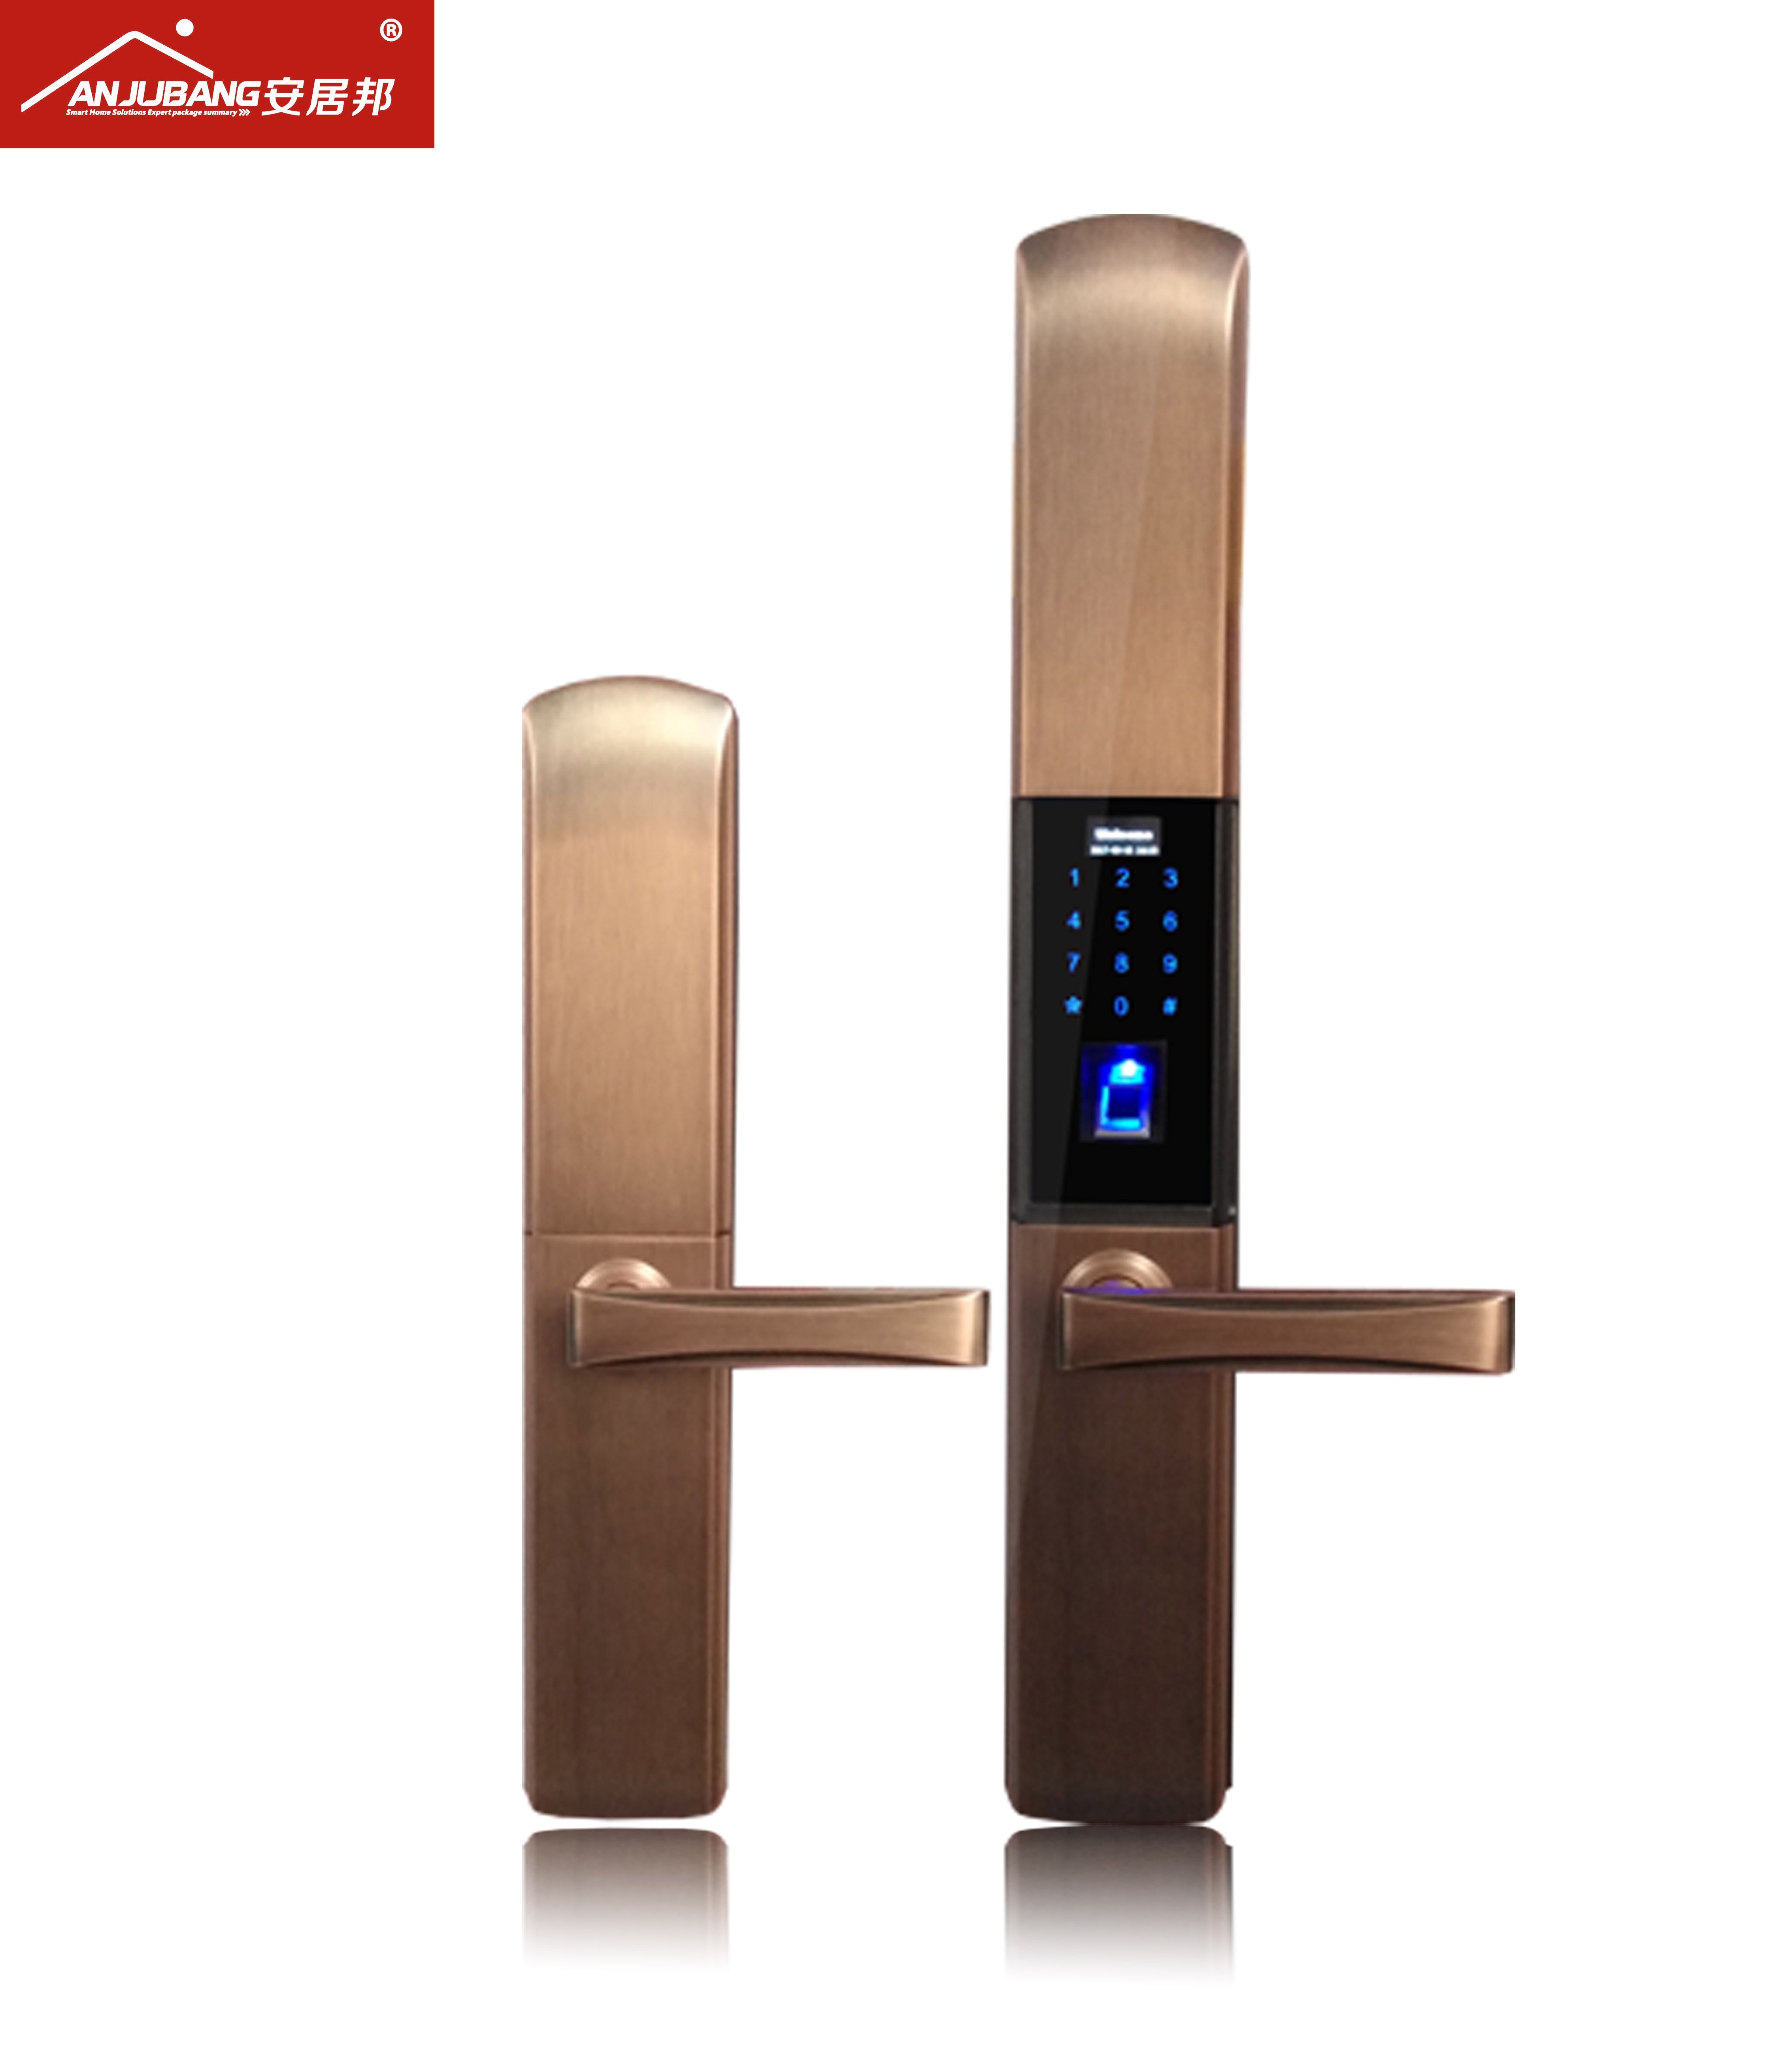 in finishes to smartcode keyless home dp into variety s secure enlarge of deadbolt deadbolts for smartkey available a click featuring remote lock your each kwikset door and entry electronic are allow